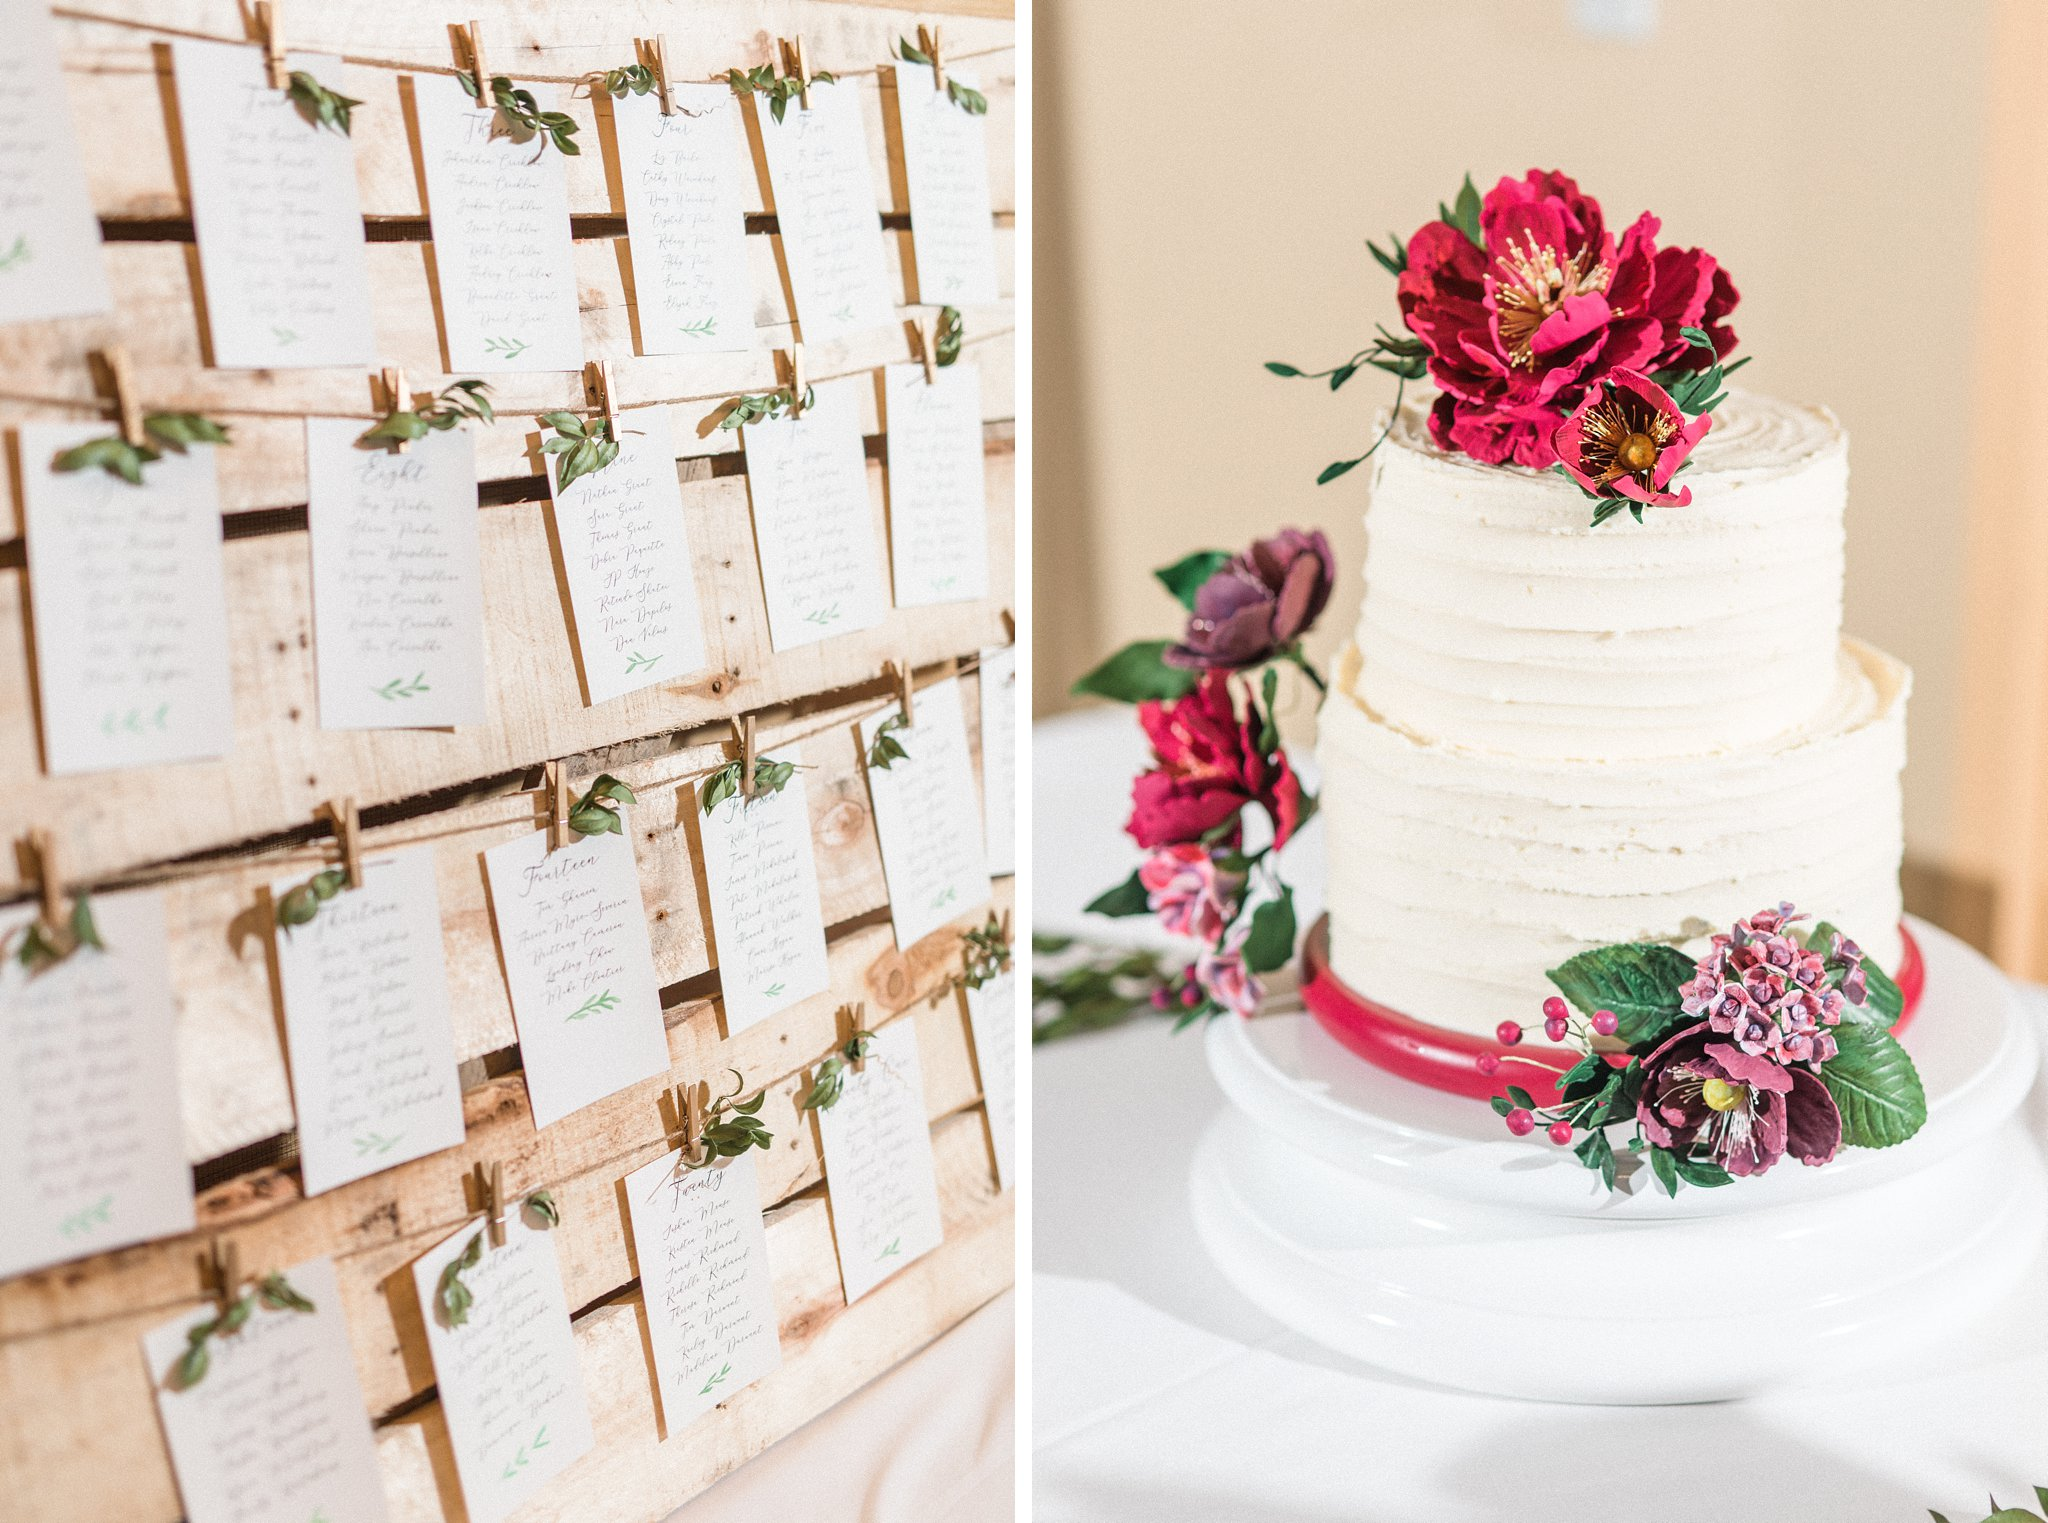 Seating chart and two-tiered white cake with burgundy flowers, Hilton Garden Inn Ottawa Airport Hotel Wedding